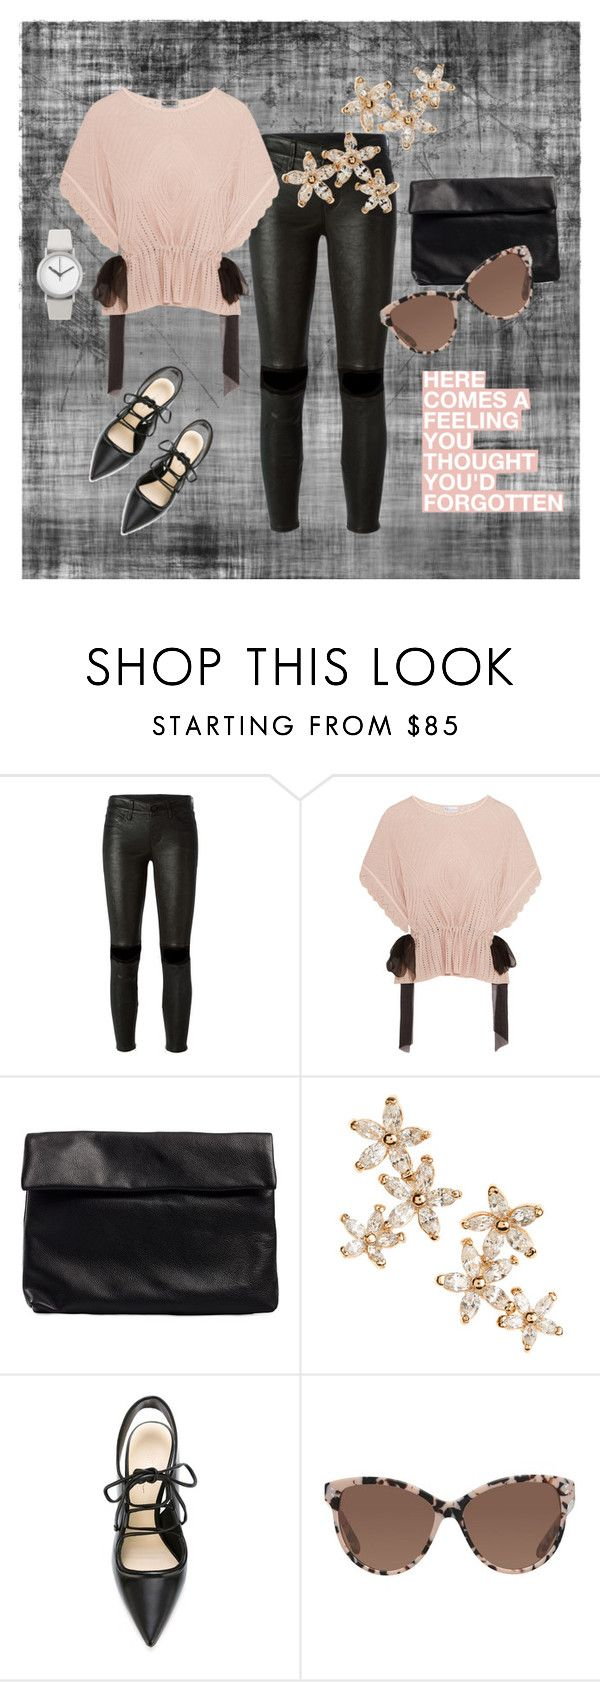 """""""Forgotten Feeling"""" by gemmajam ❤ liked on Polyvore featuring RtA, RED Valentino, Nelly, Bonheur, 3.1 Phillip Lim, STELLA McCARTNEY, Normal Timepieces, black, blush and forgottenfeeling"""